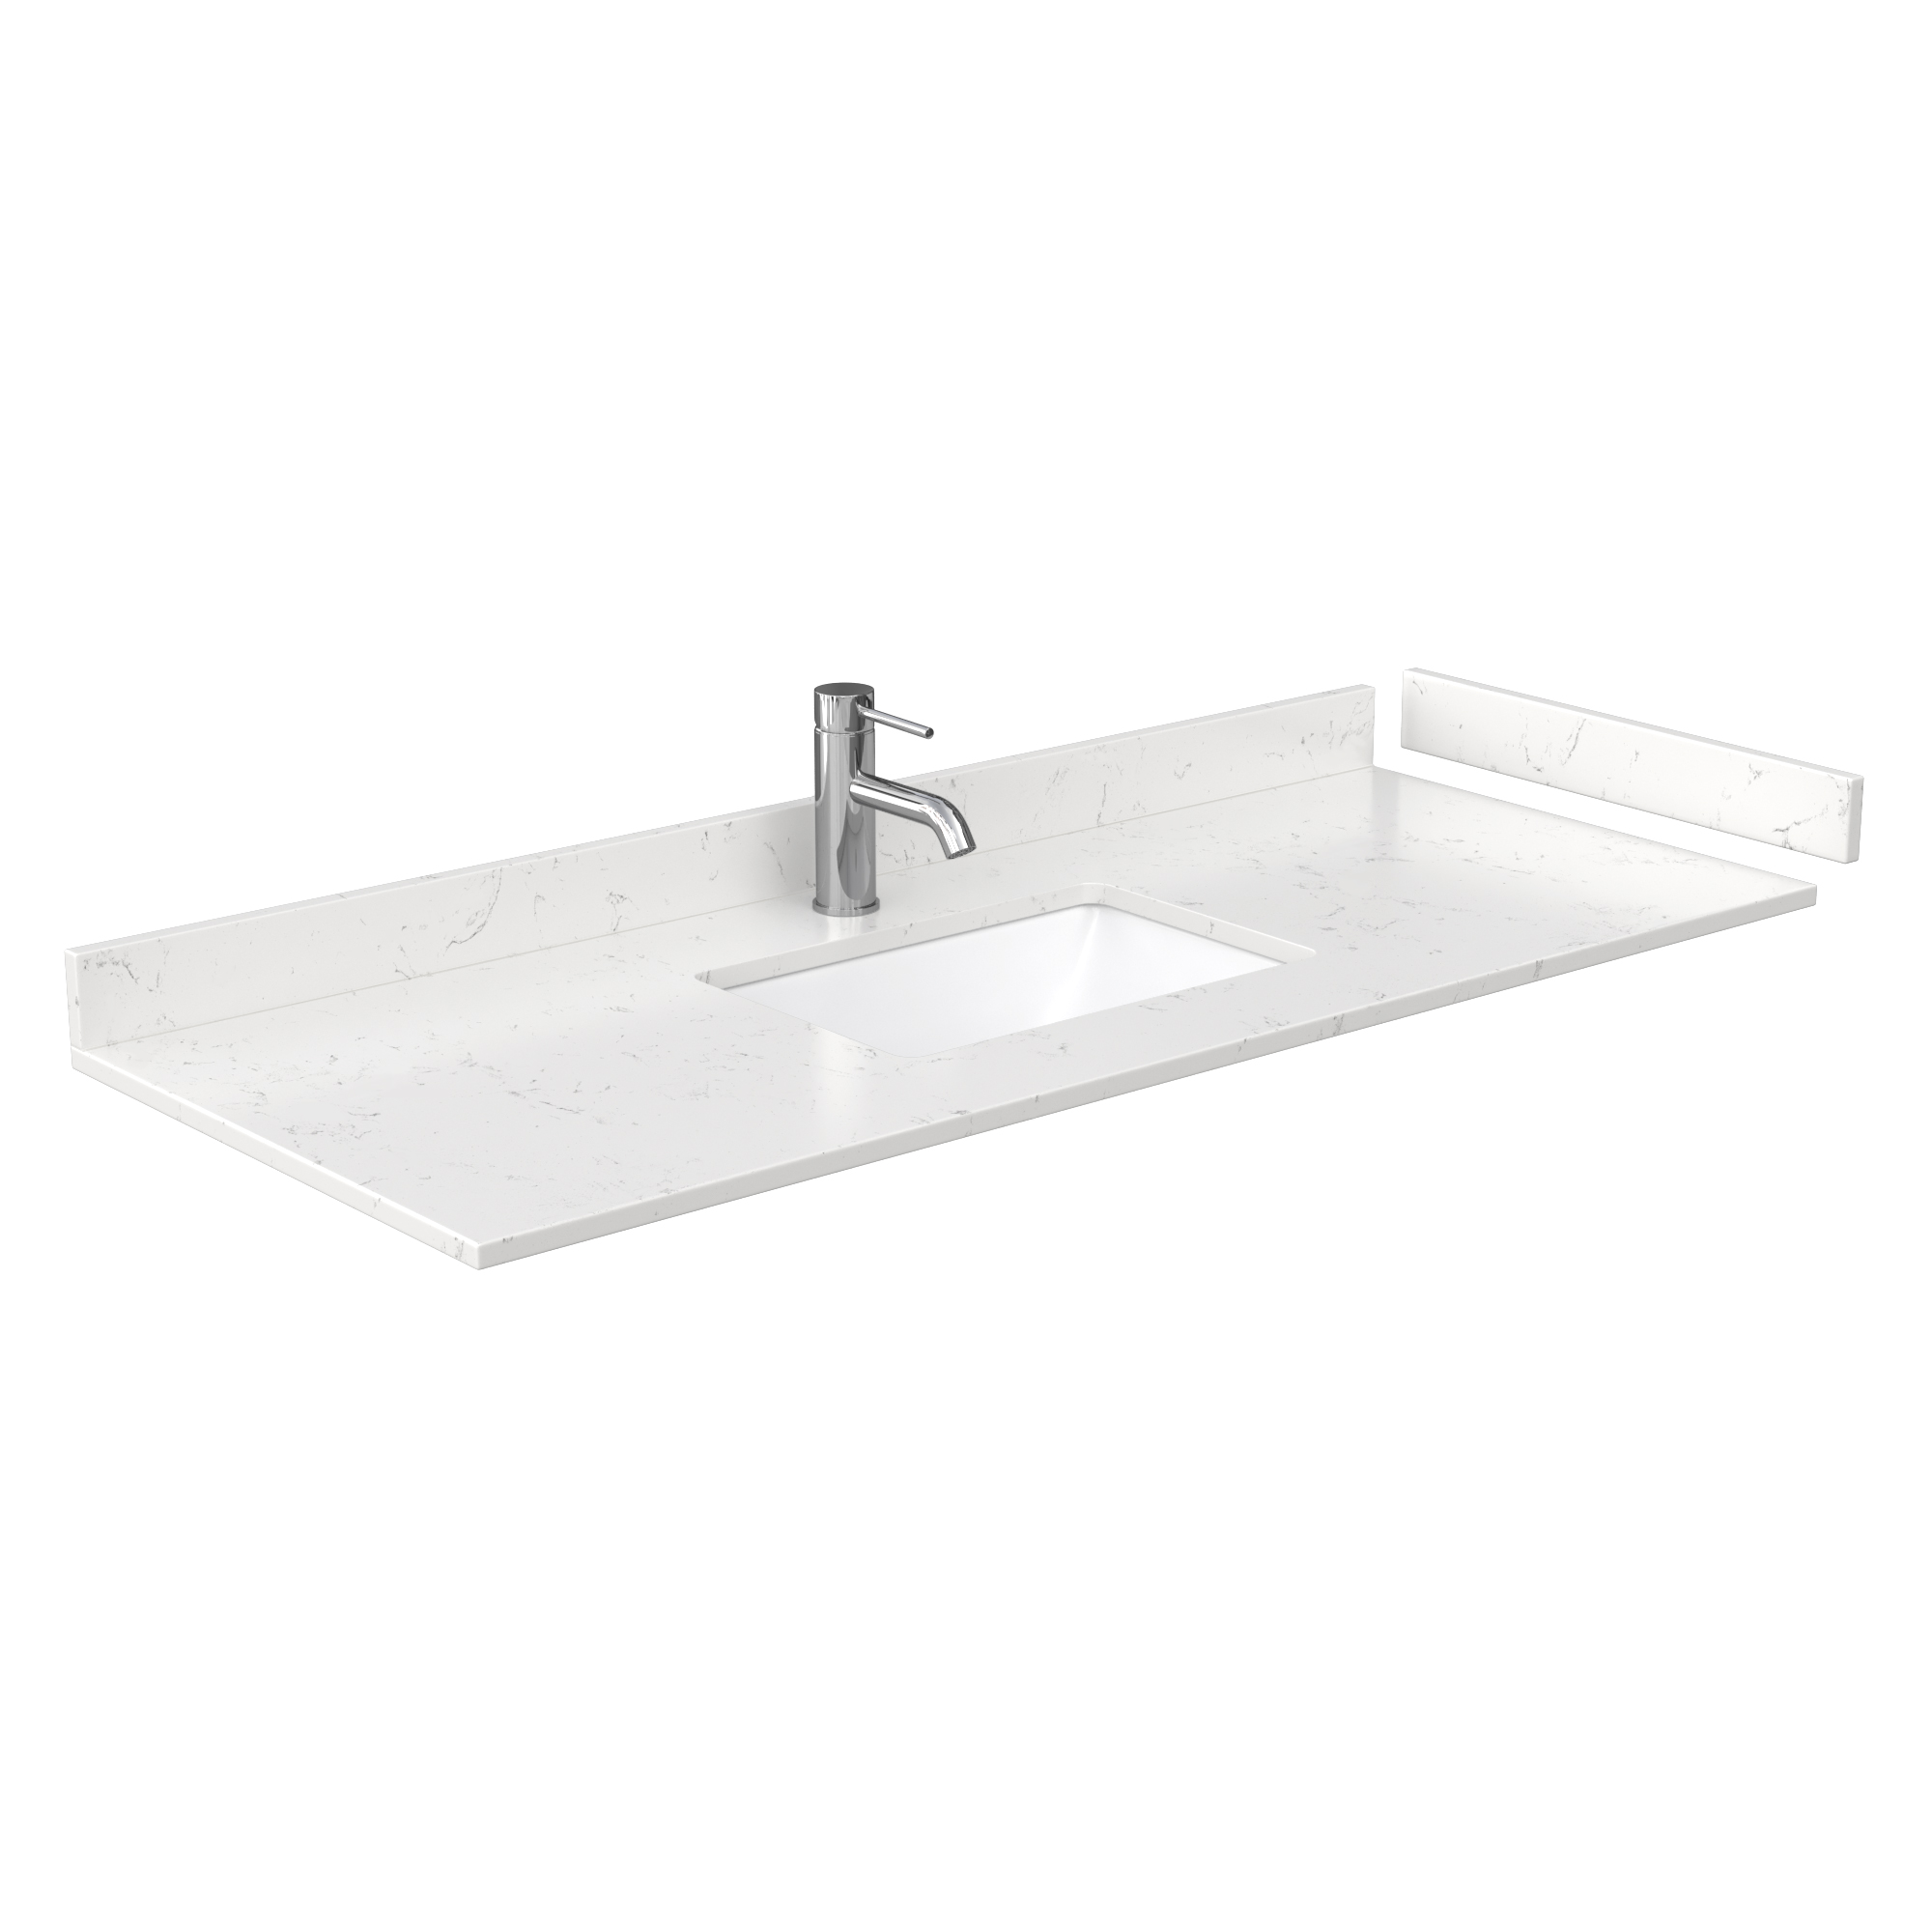 Beckett 54 Single Bathroom Vanity White Beautiful Bathroom Furniture For Every Home Wyndham Collection